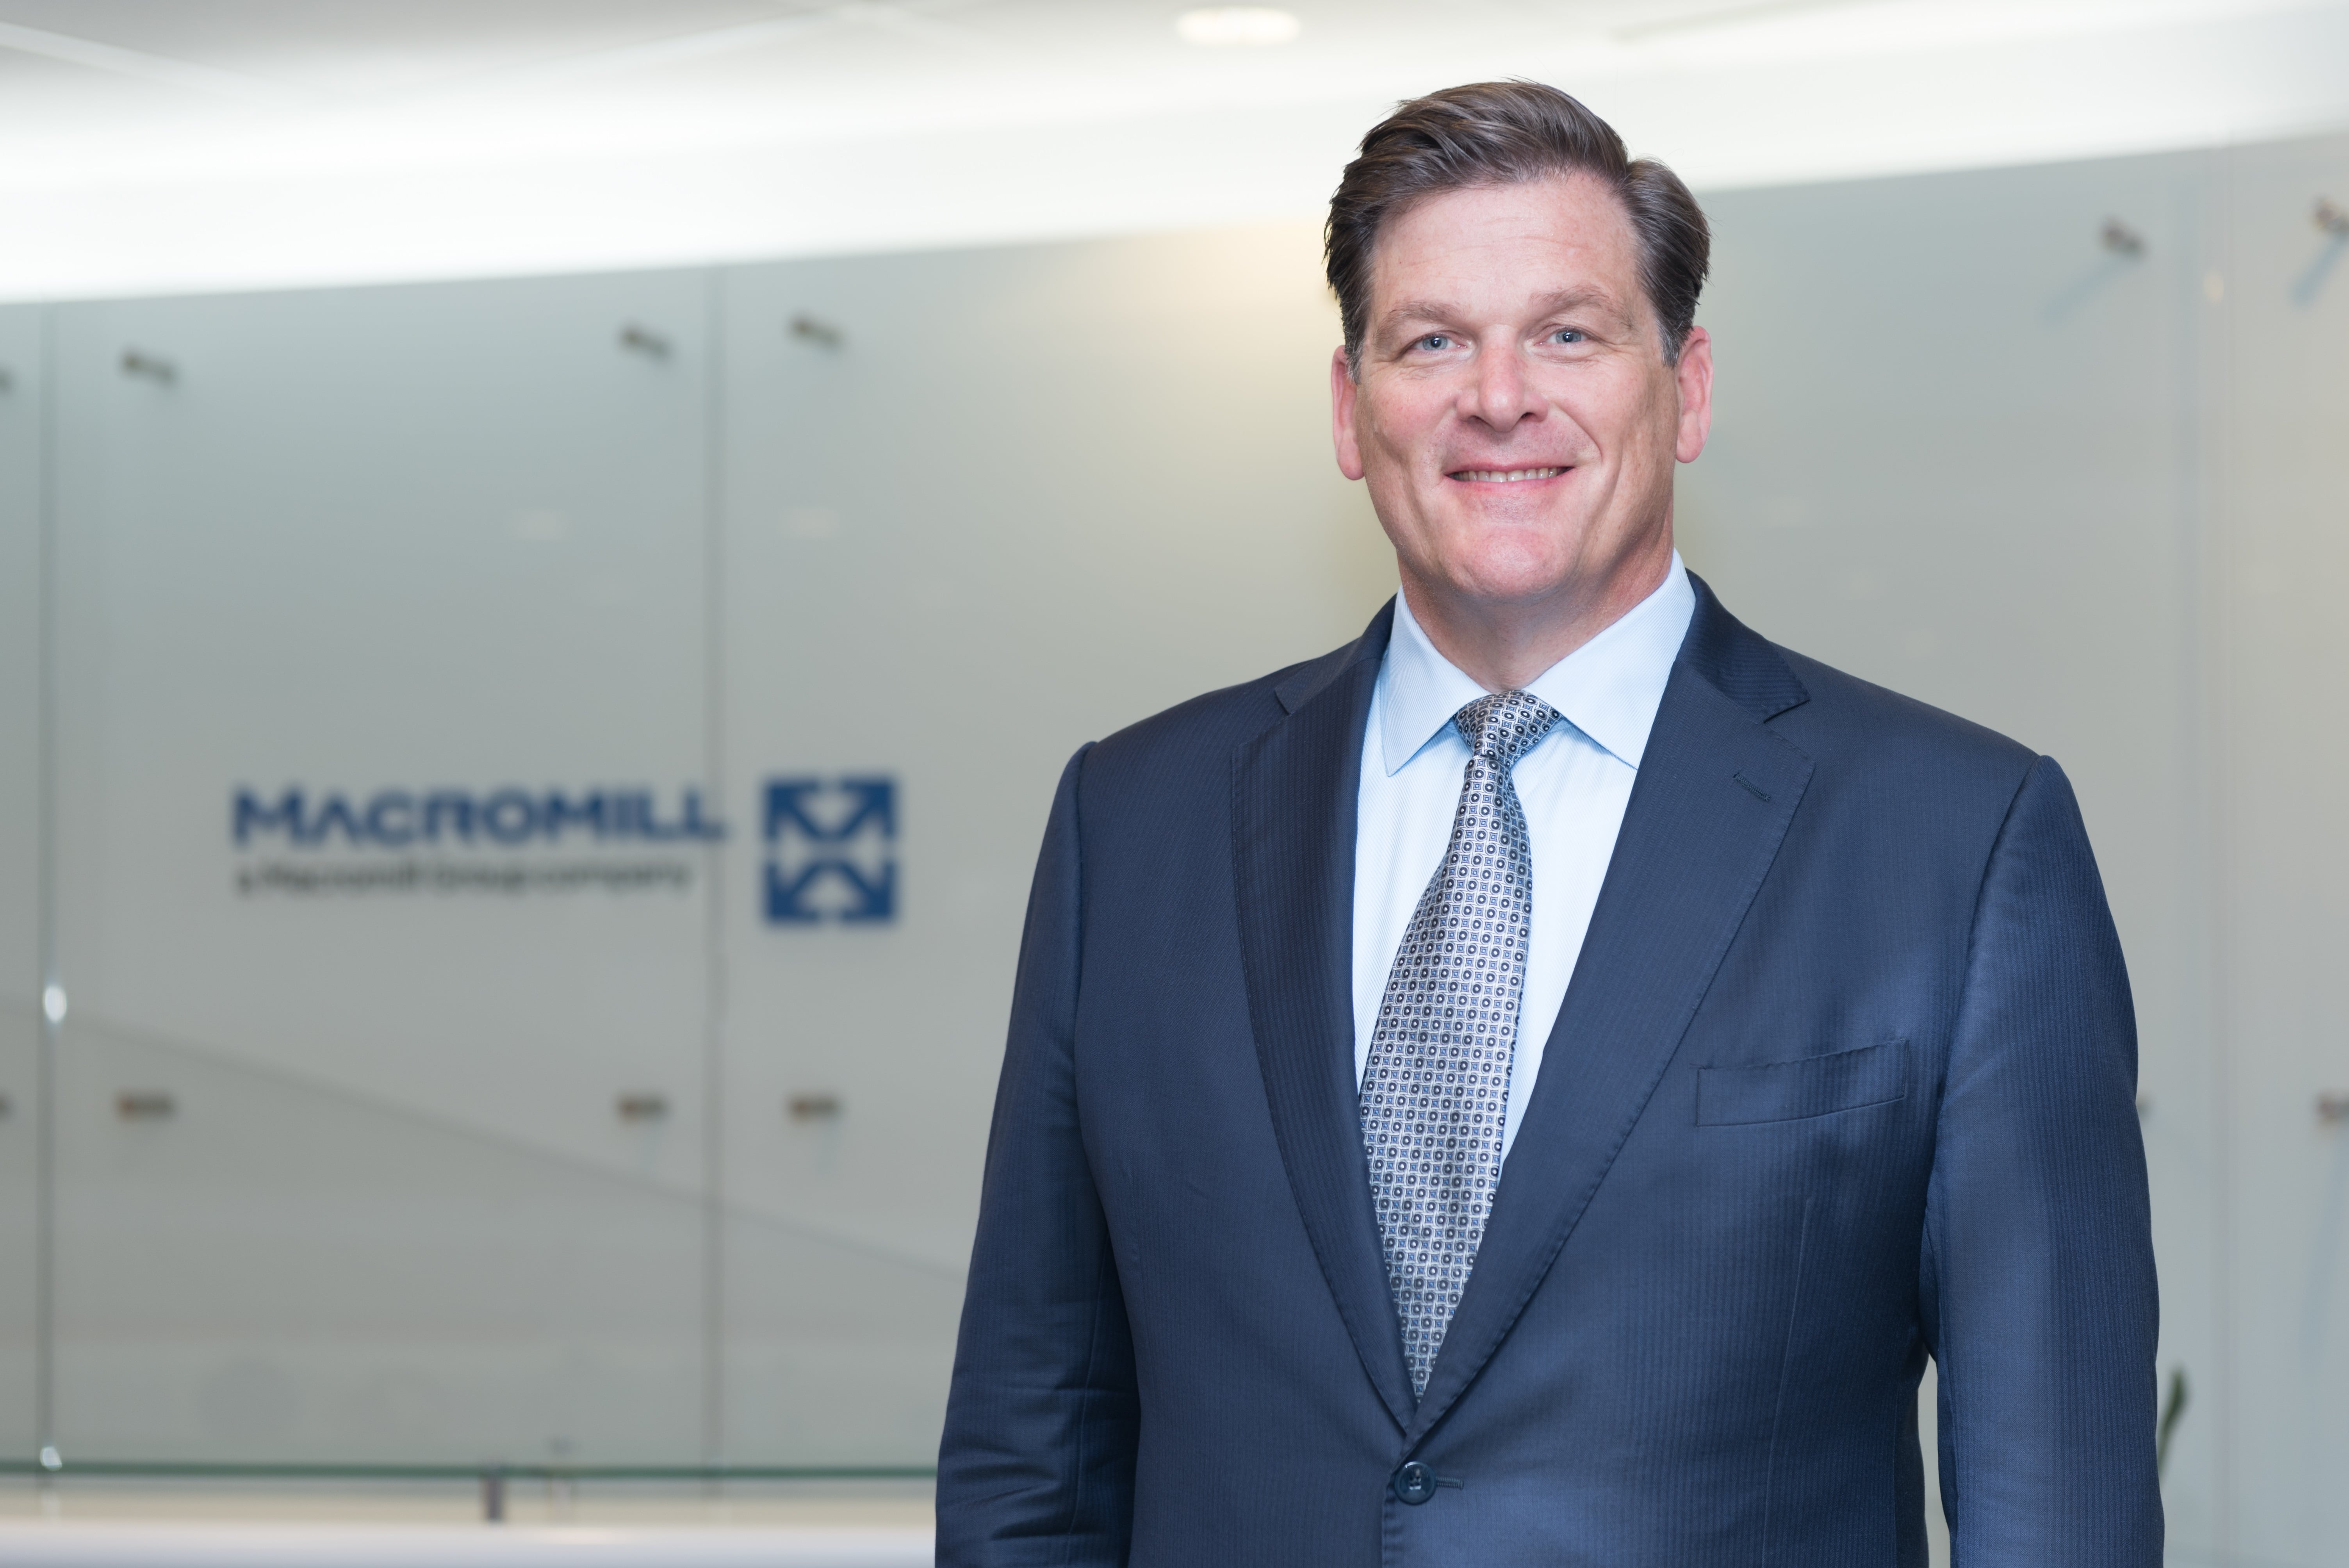 Scott Ernst stepping down as Macromill Global CEO